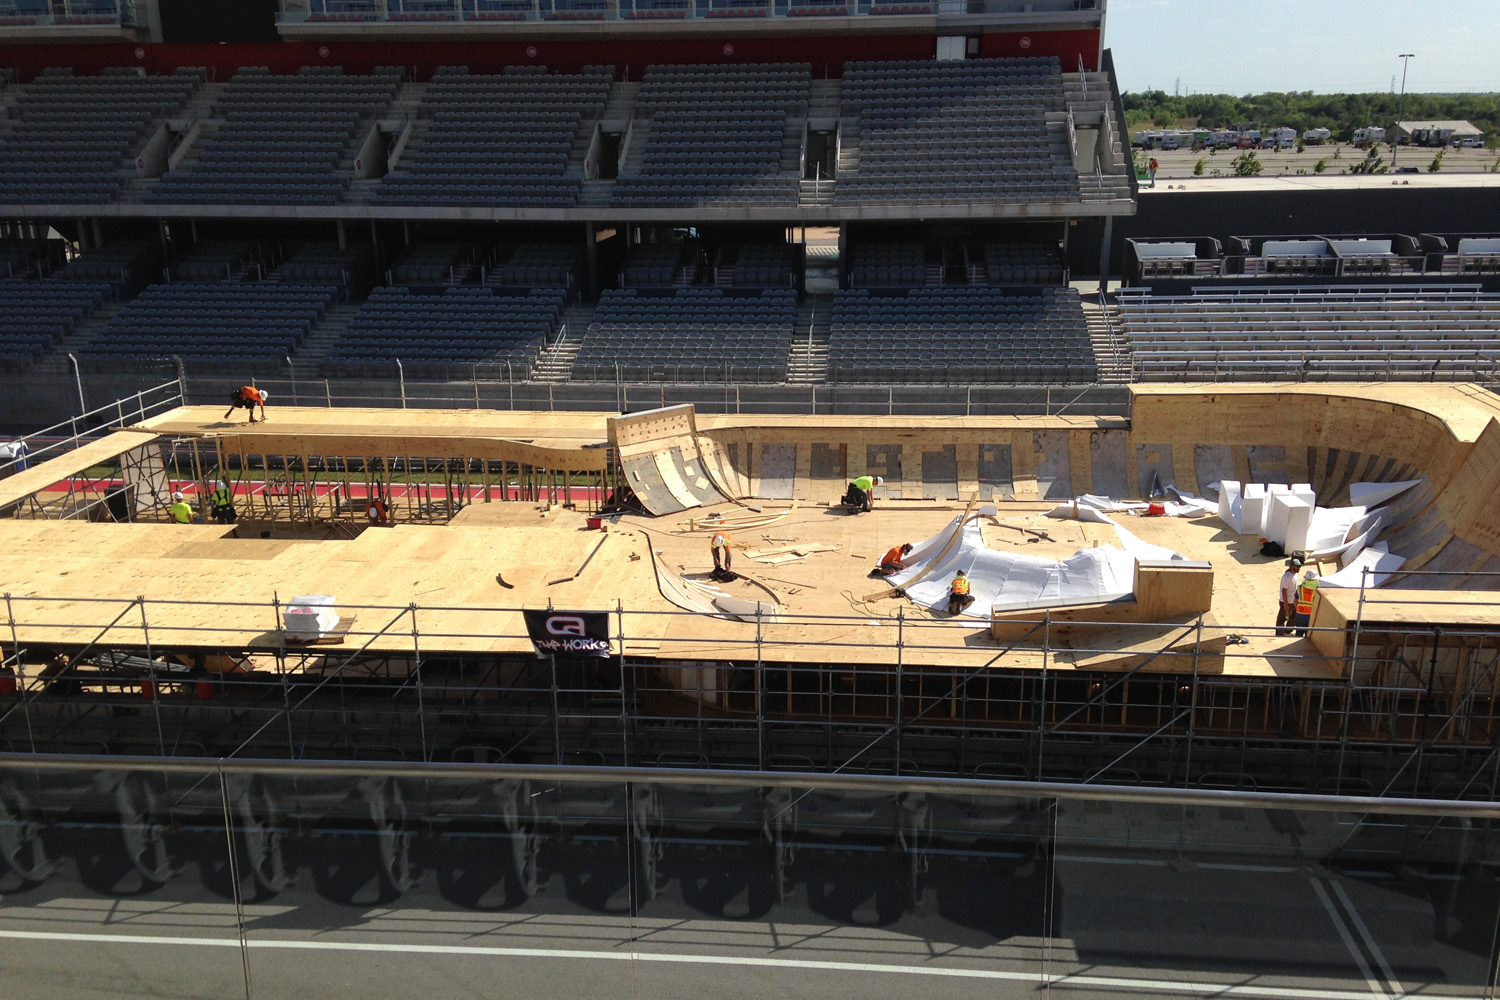 Going behind-the-scenes at X Games Austin (Photo courtesy of ESPN Images)